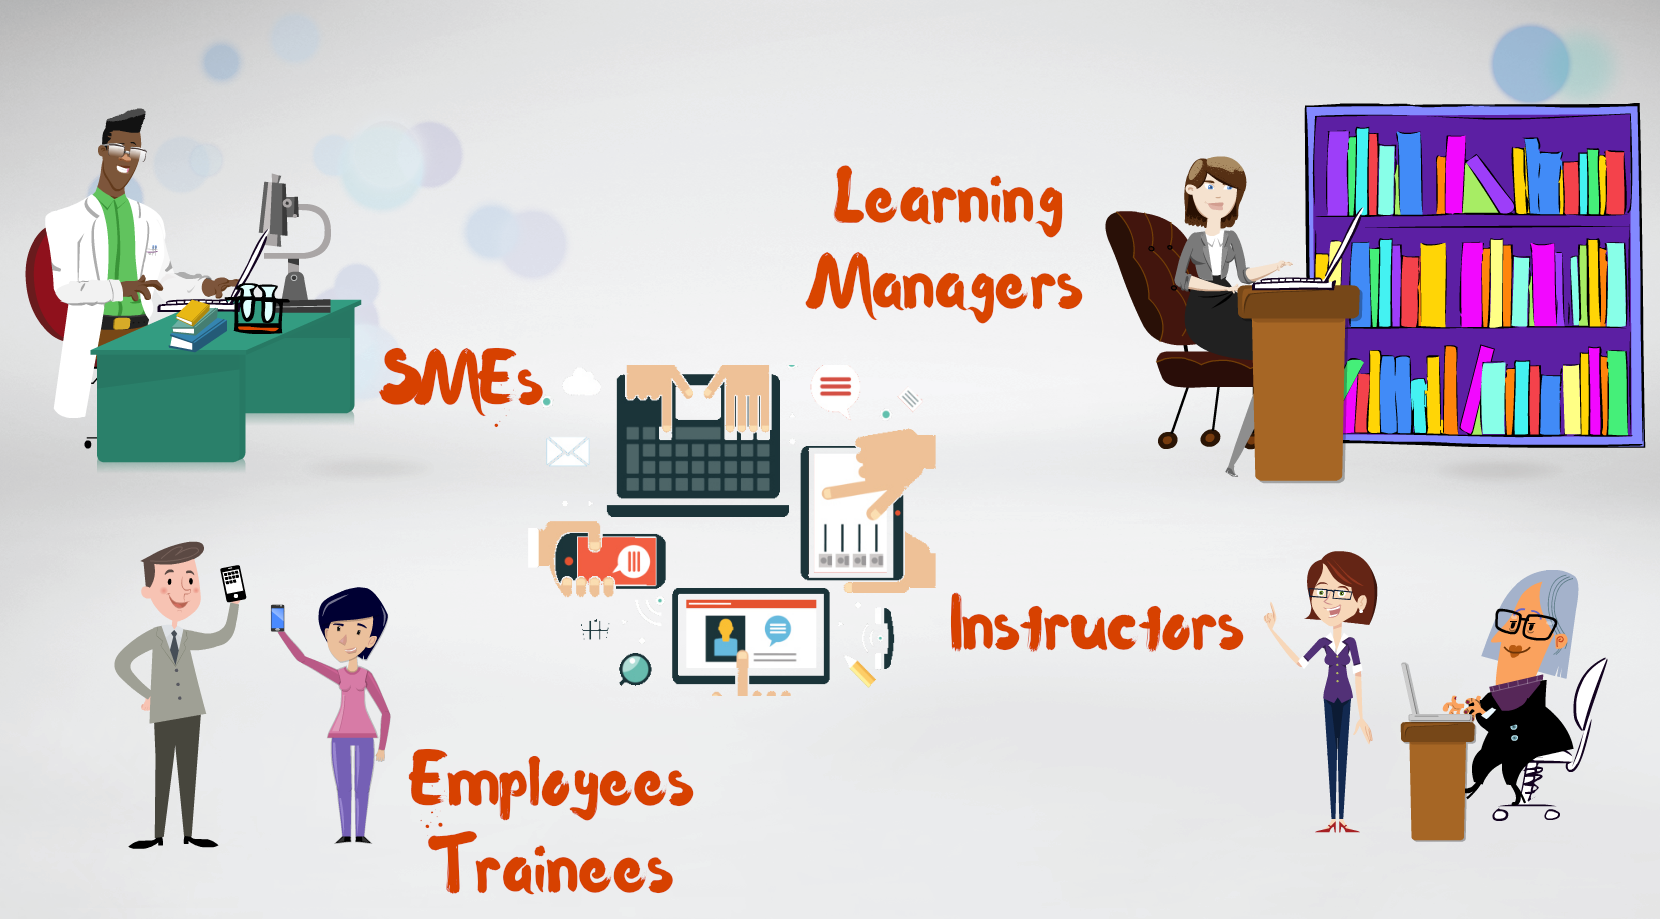 Traditional Vs Social Learning Benefits at Work